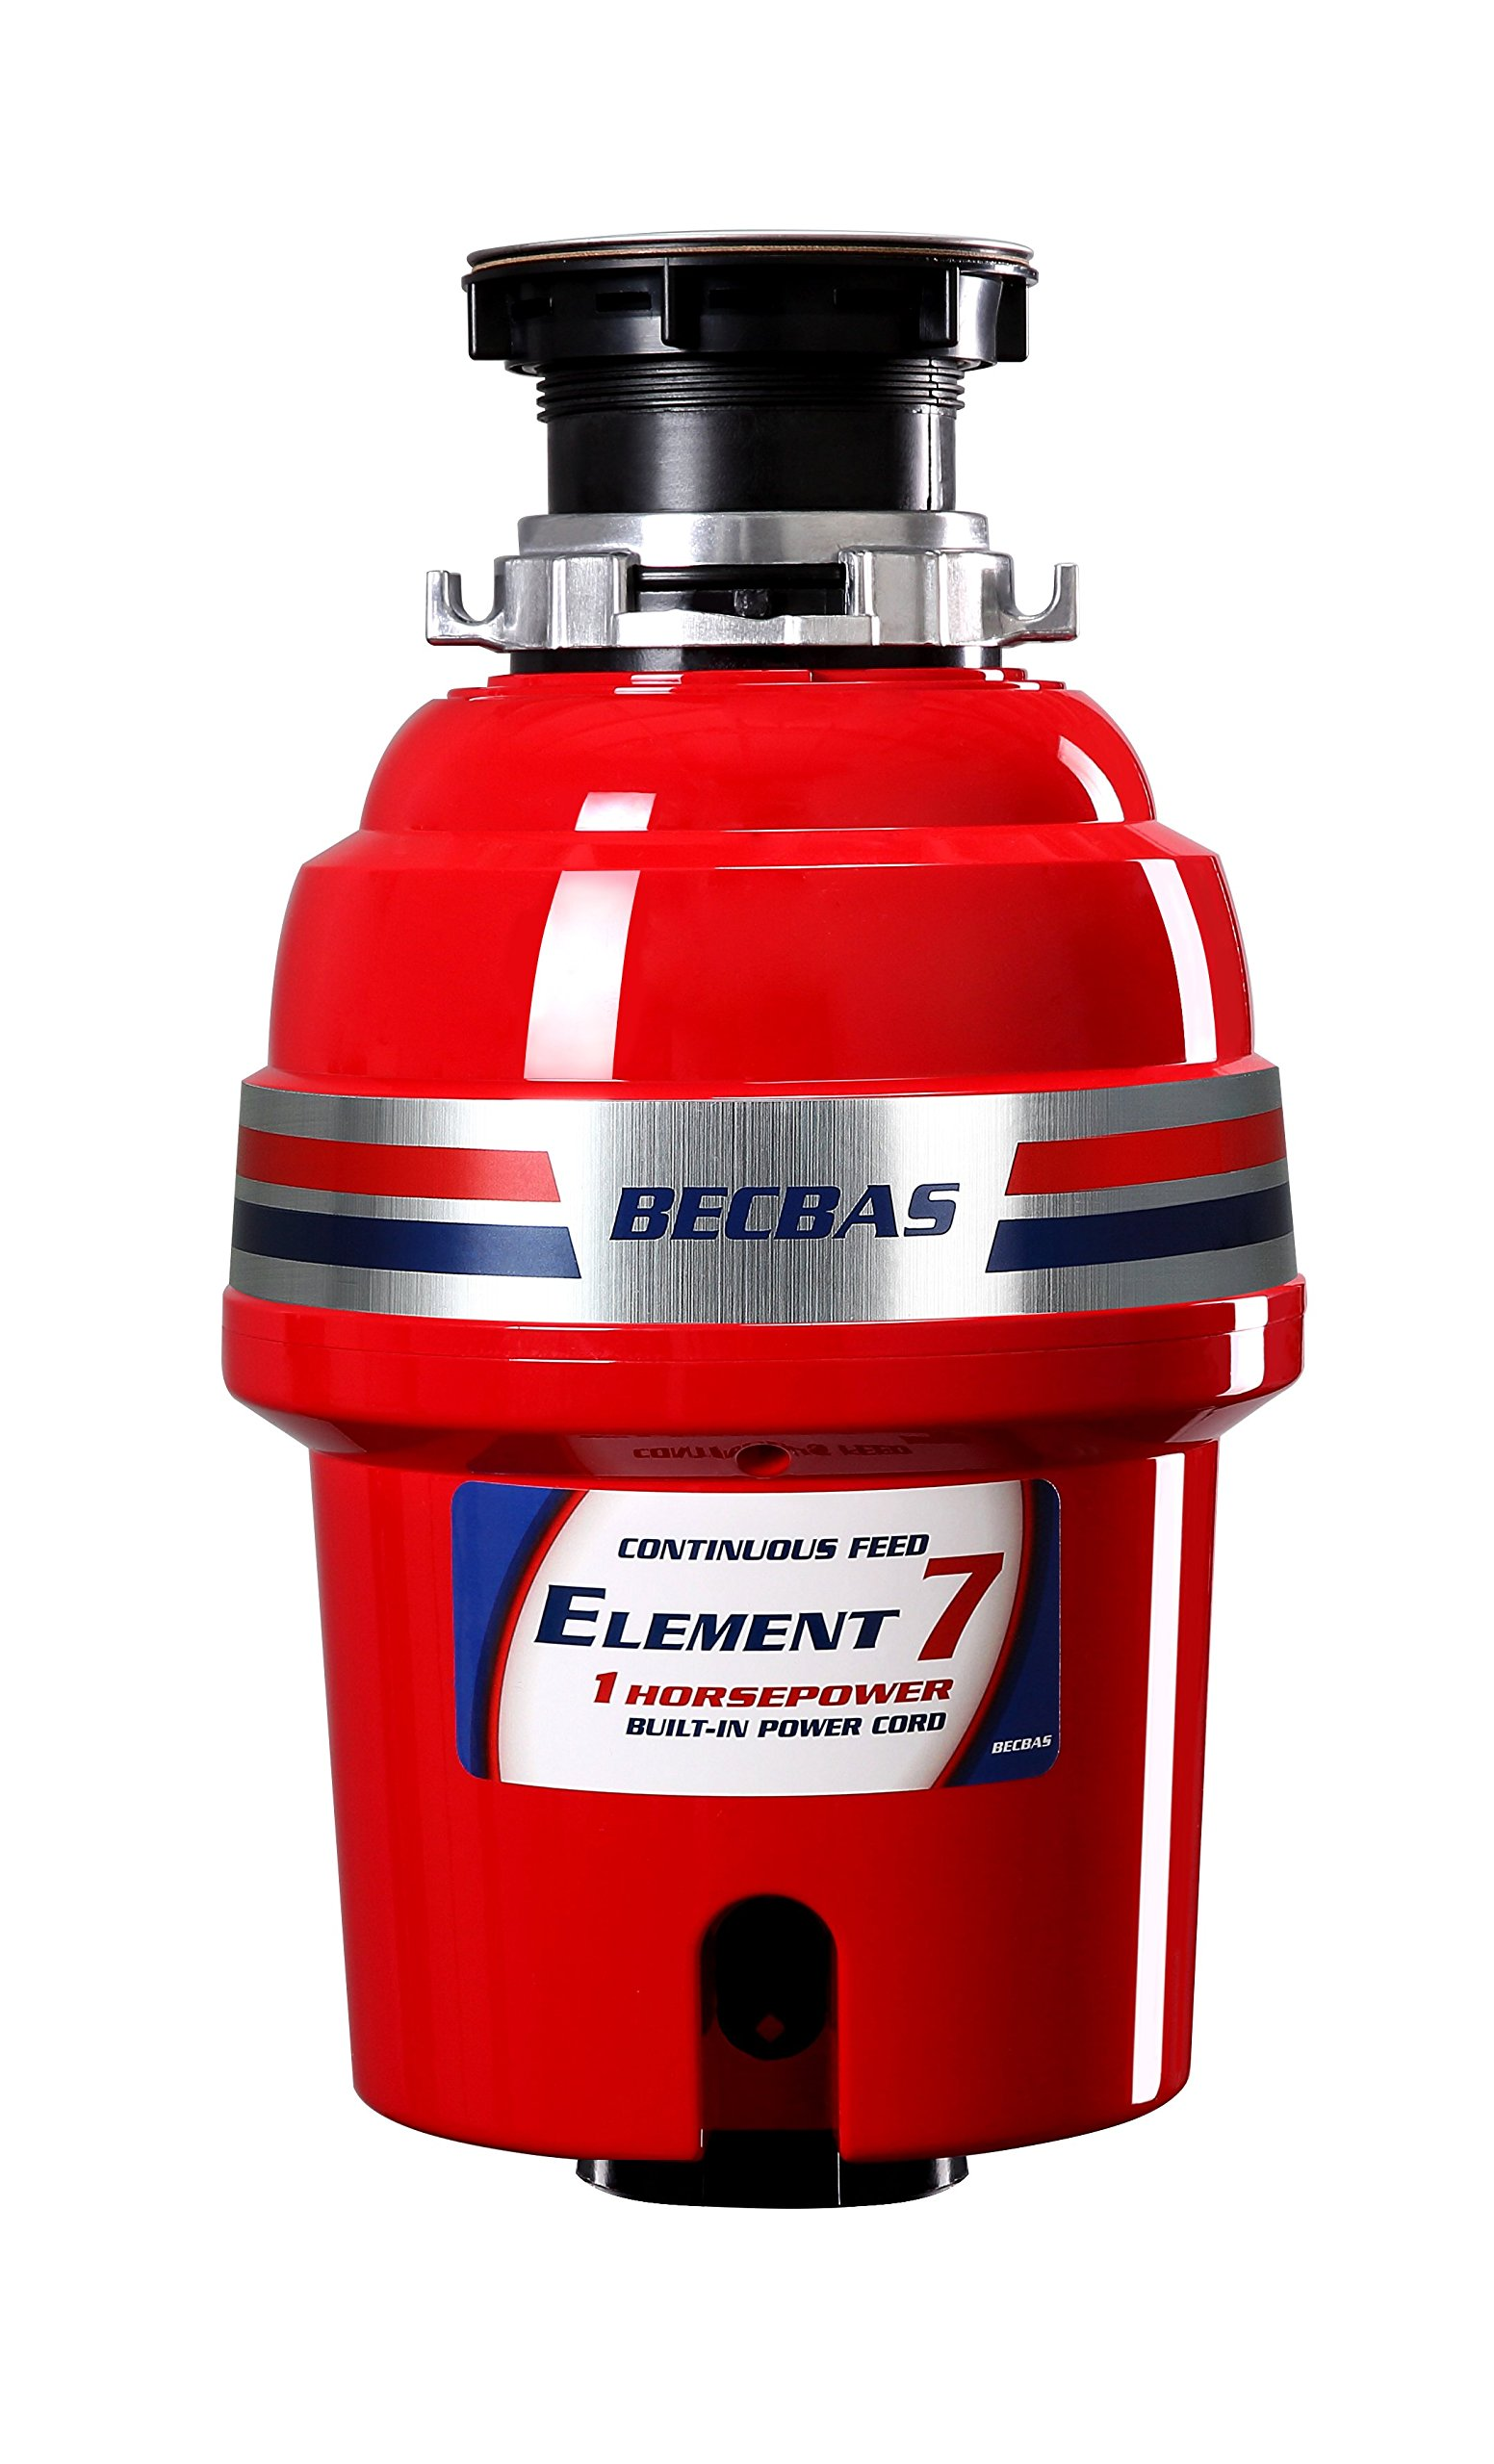 BECBAS ELEMENT 7 Garbage Disposal,1HP 2700RPM Household Food Waste Disposer, With Power Cord by BECBAS